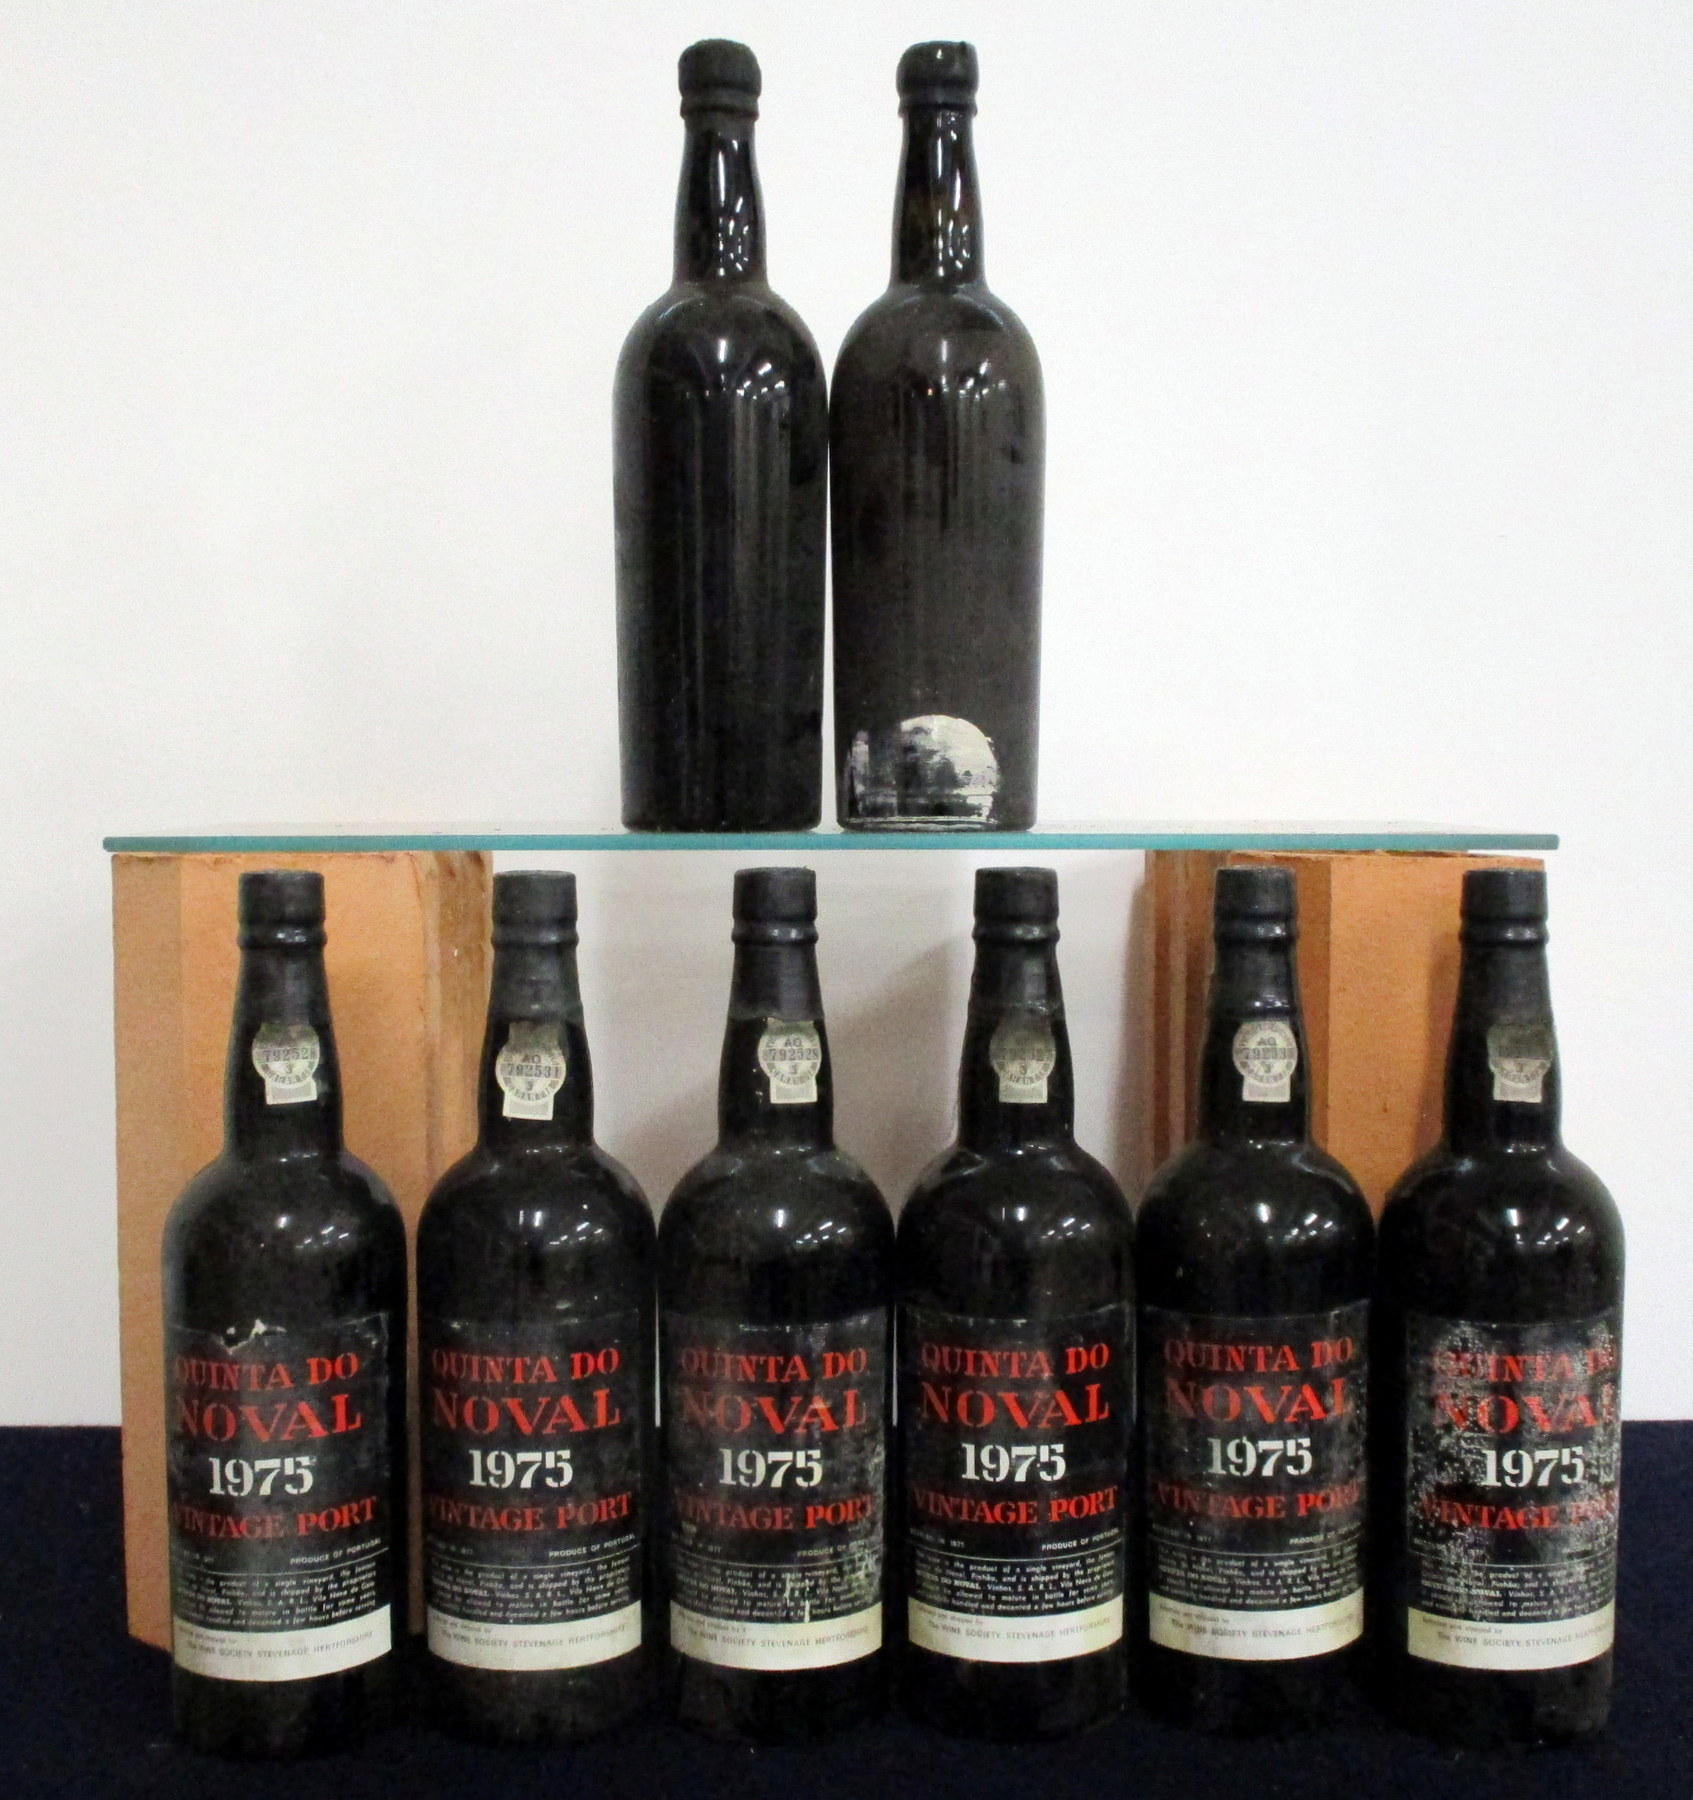 1 bt Quinta do Noval 1955 Vintage Port, i.n, ID from chipped Wax, sl bs 1 bt believed Quinta do